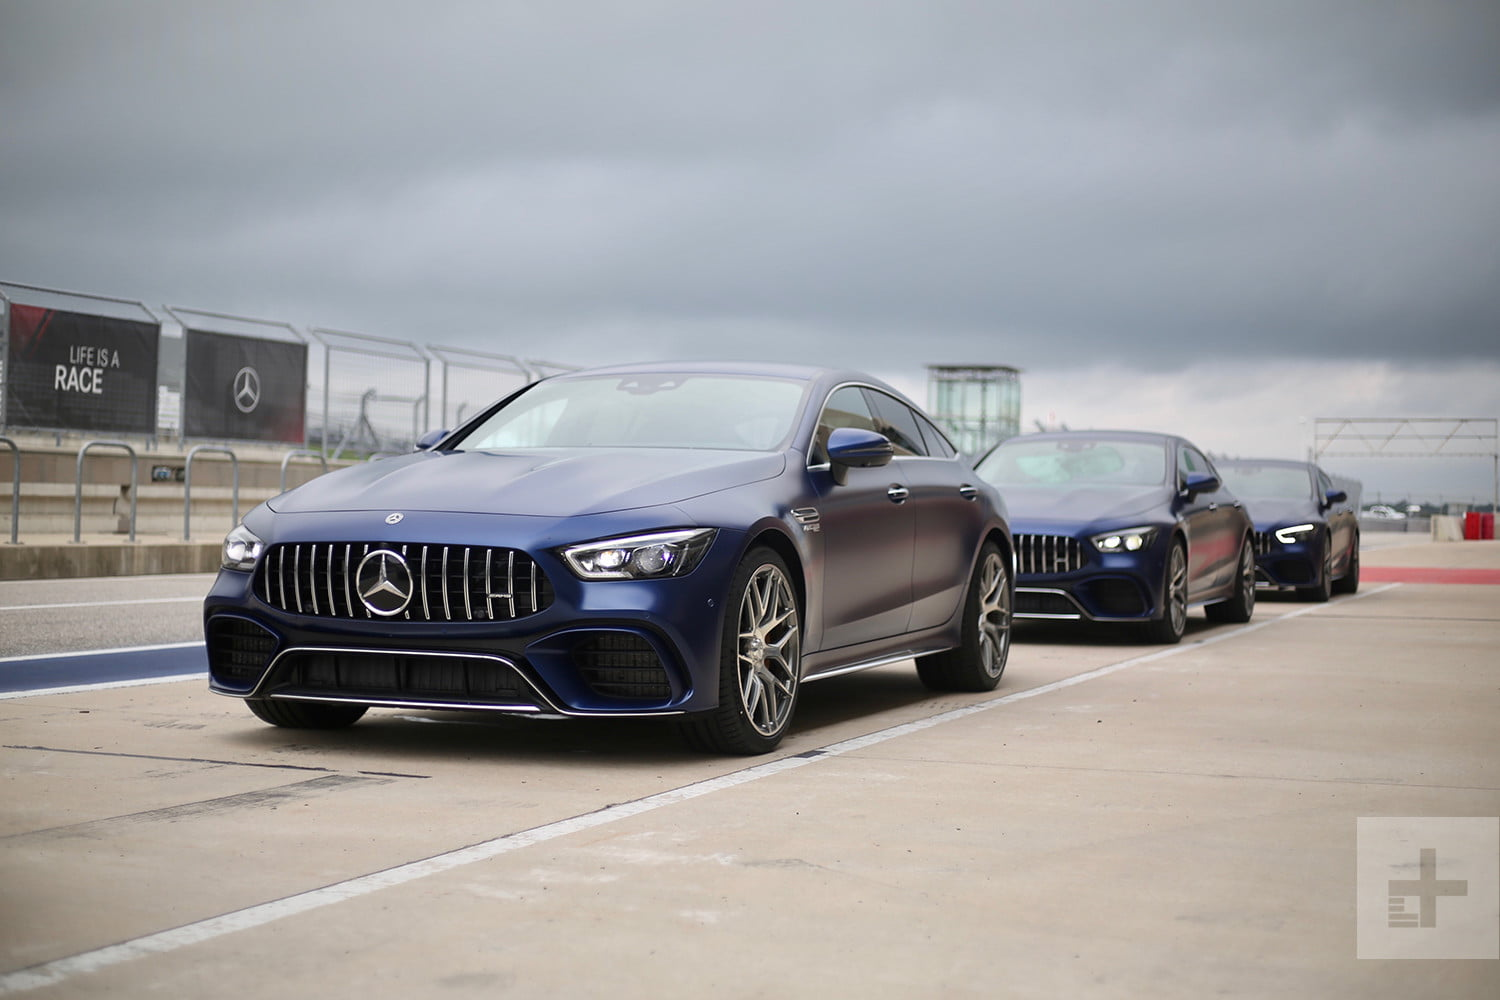 2019 mercedes amg gt 4 door coupe first drive pictures pricing digital trends. Black Bedroom Furniture Sets. Home Design Ideas